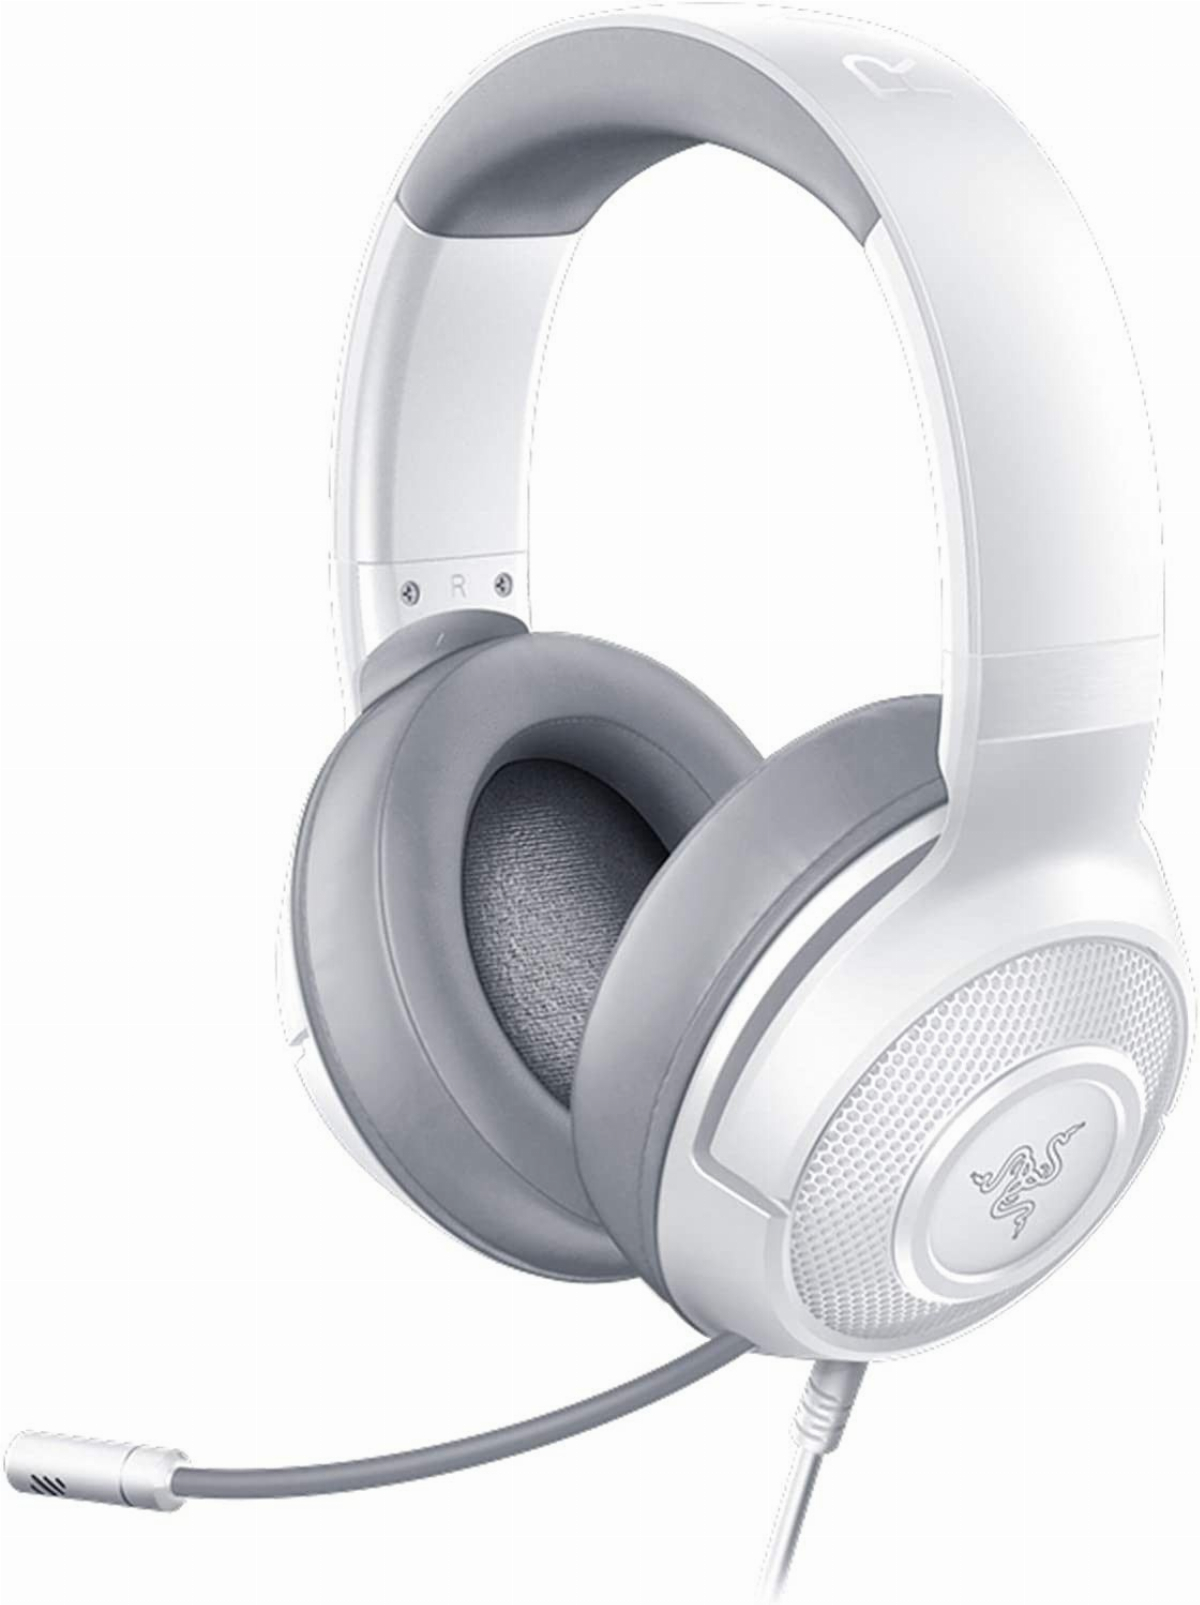 Геймърски слушалки Razer Kraken X Mercury Gaming Headset White